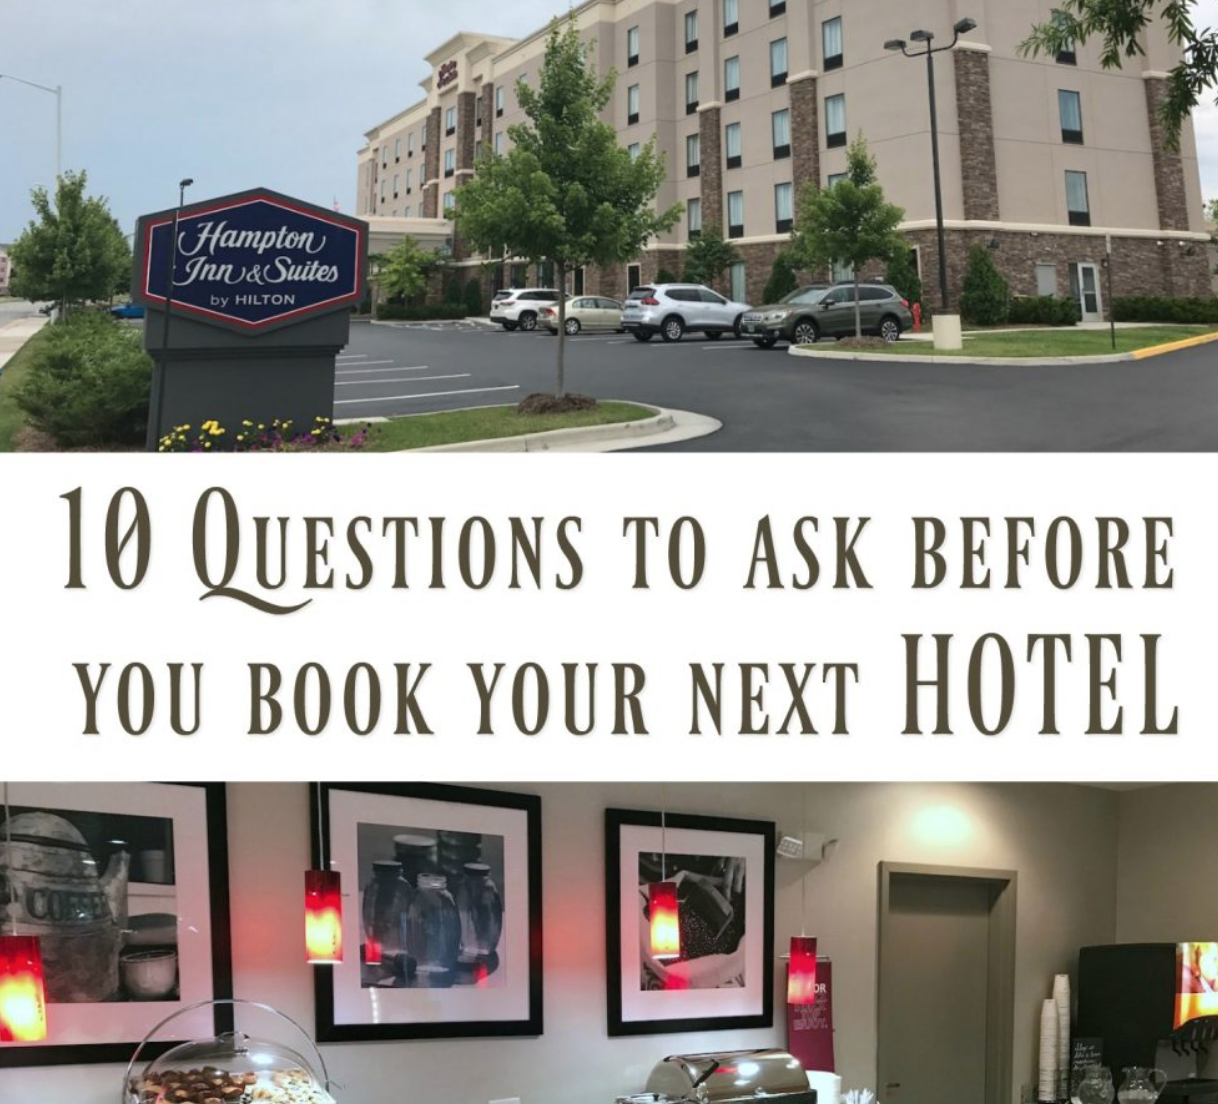 Questions to ask before you book your next hotel